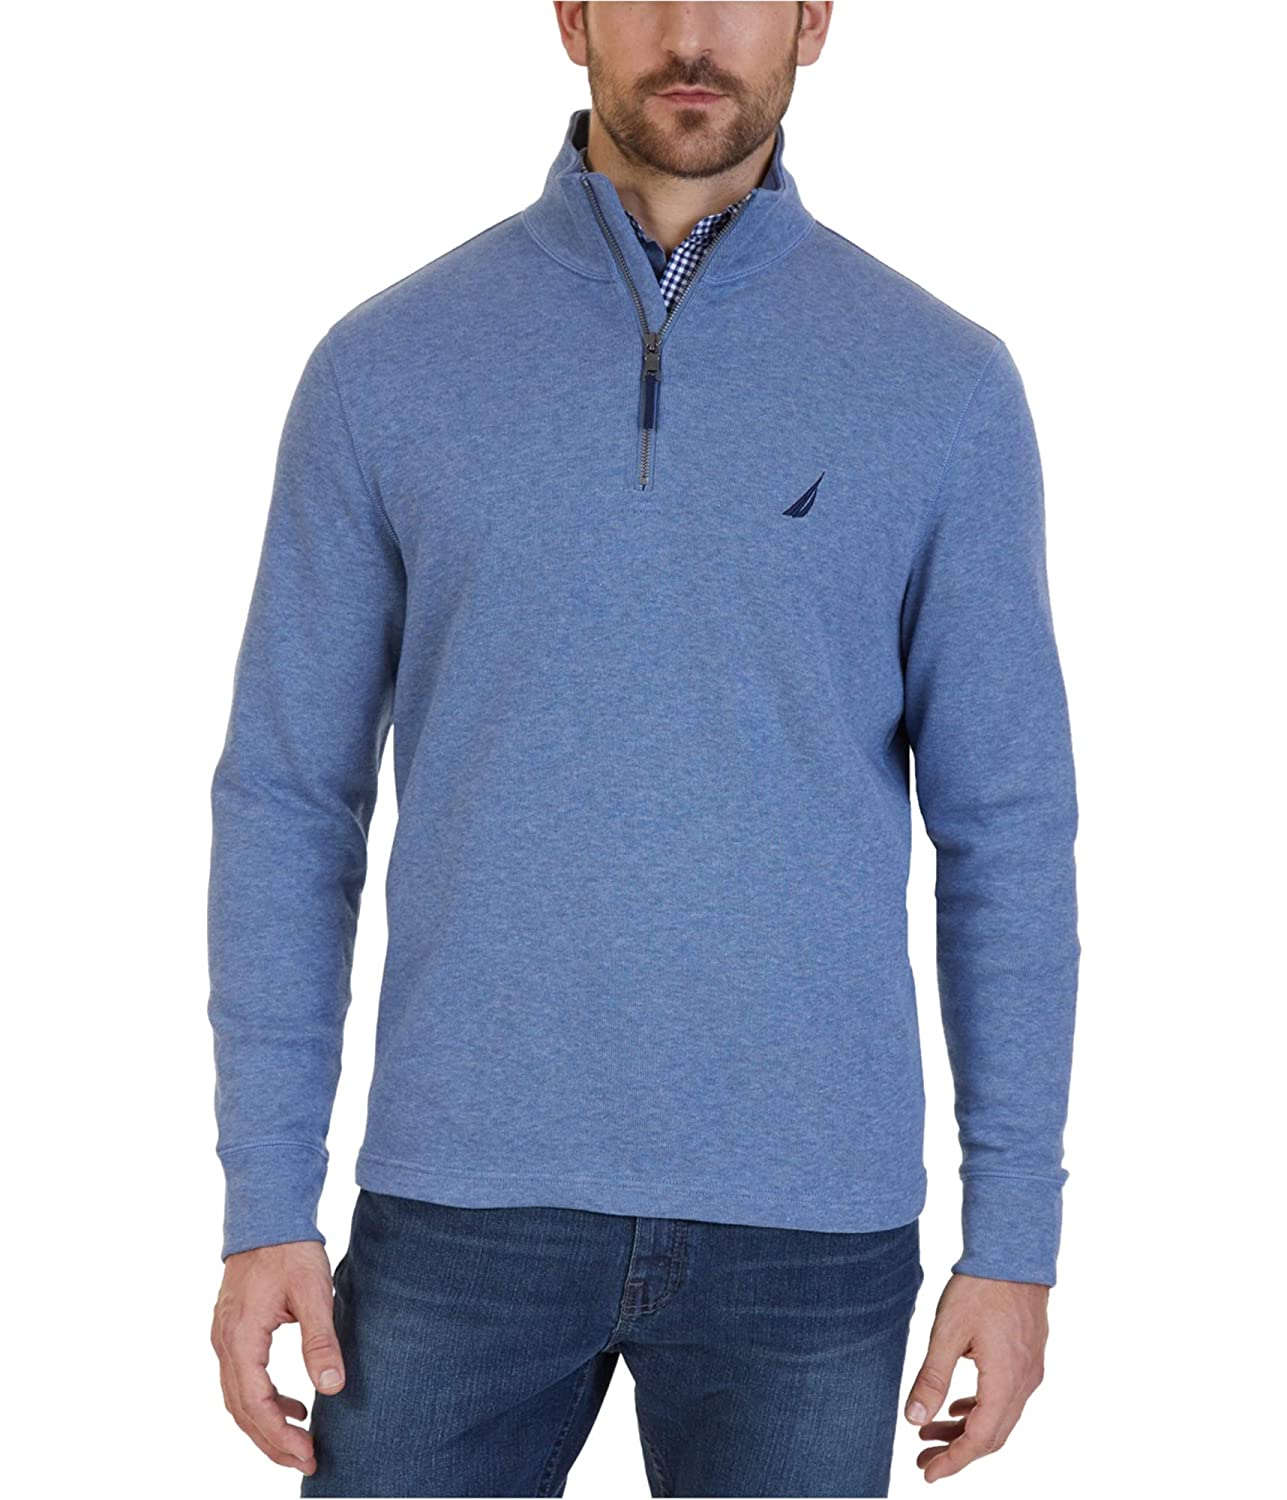 Nautica Mens Heathered Pullover Sweater